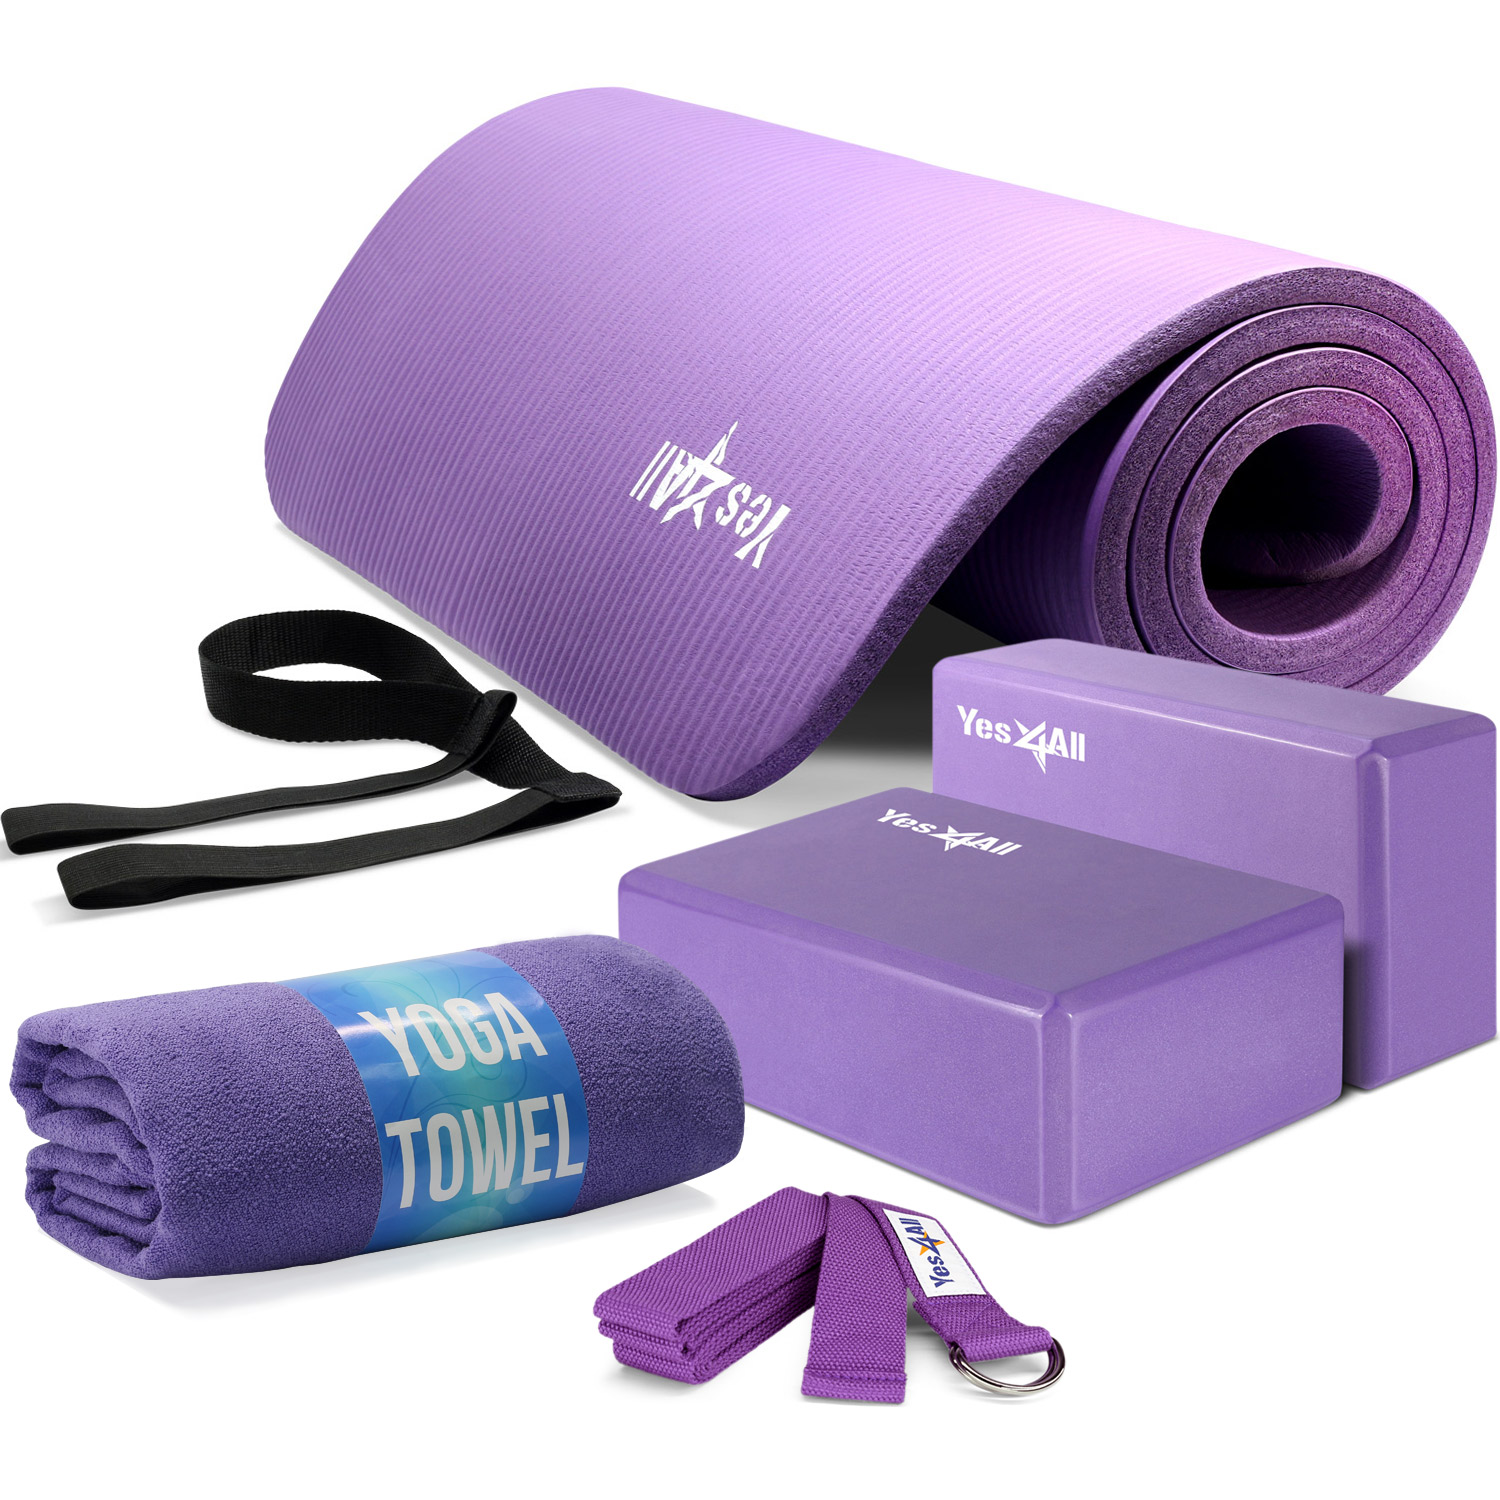 Yes4All Yoga Starter Kit, Includes NBR Exercise Yoga Mat, 2 Yoga Blocks, Yoga Strap & Yoga Towel